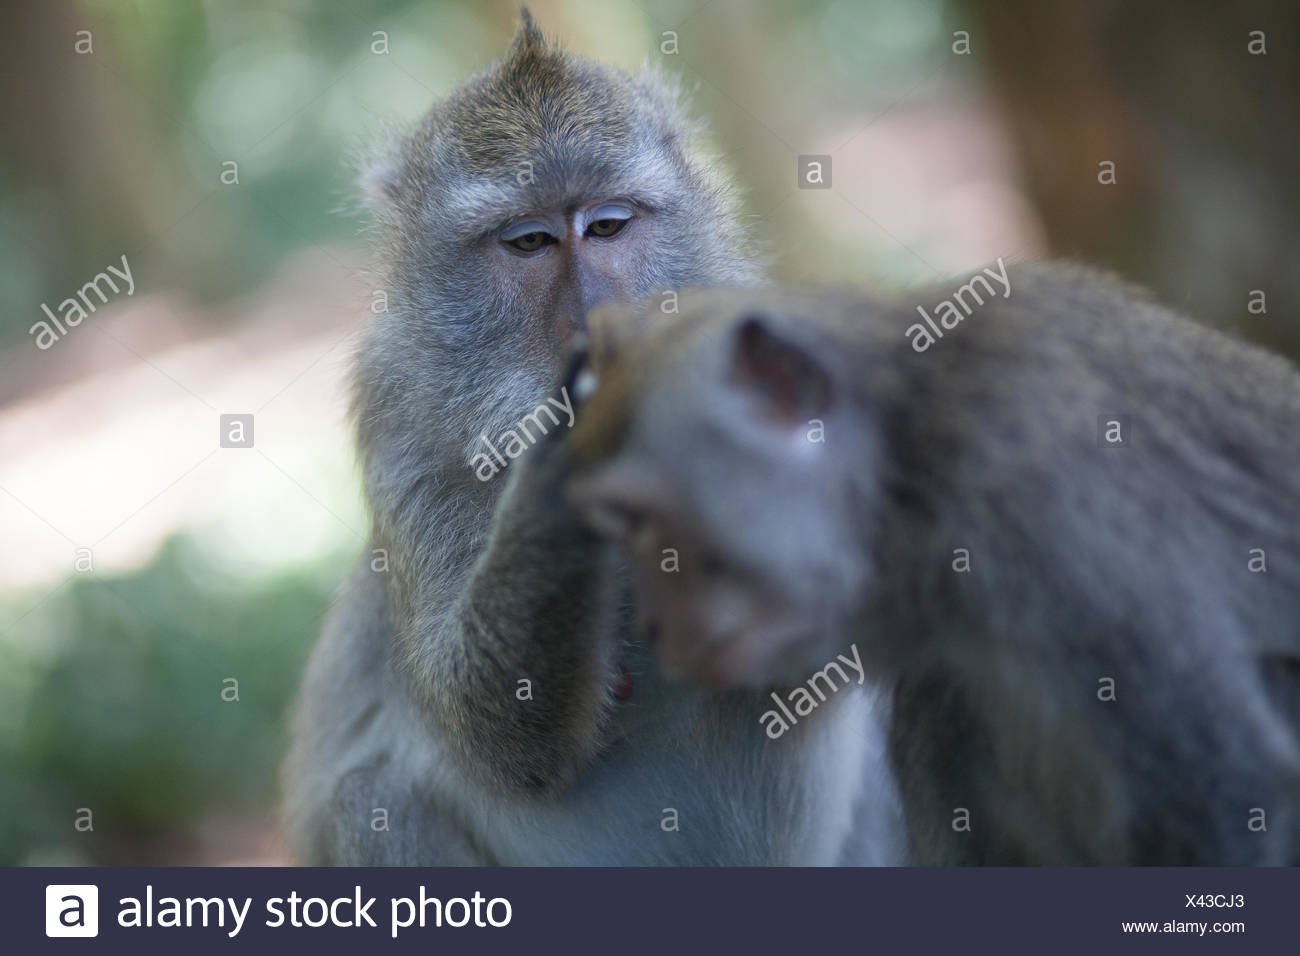 Monkey Grooming Stockfotos & Monkey Grooming Bilder Alamy